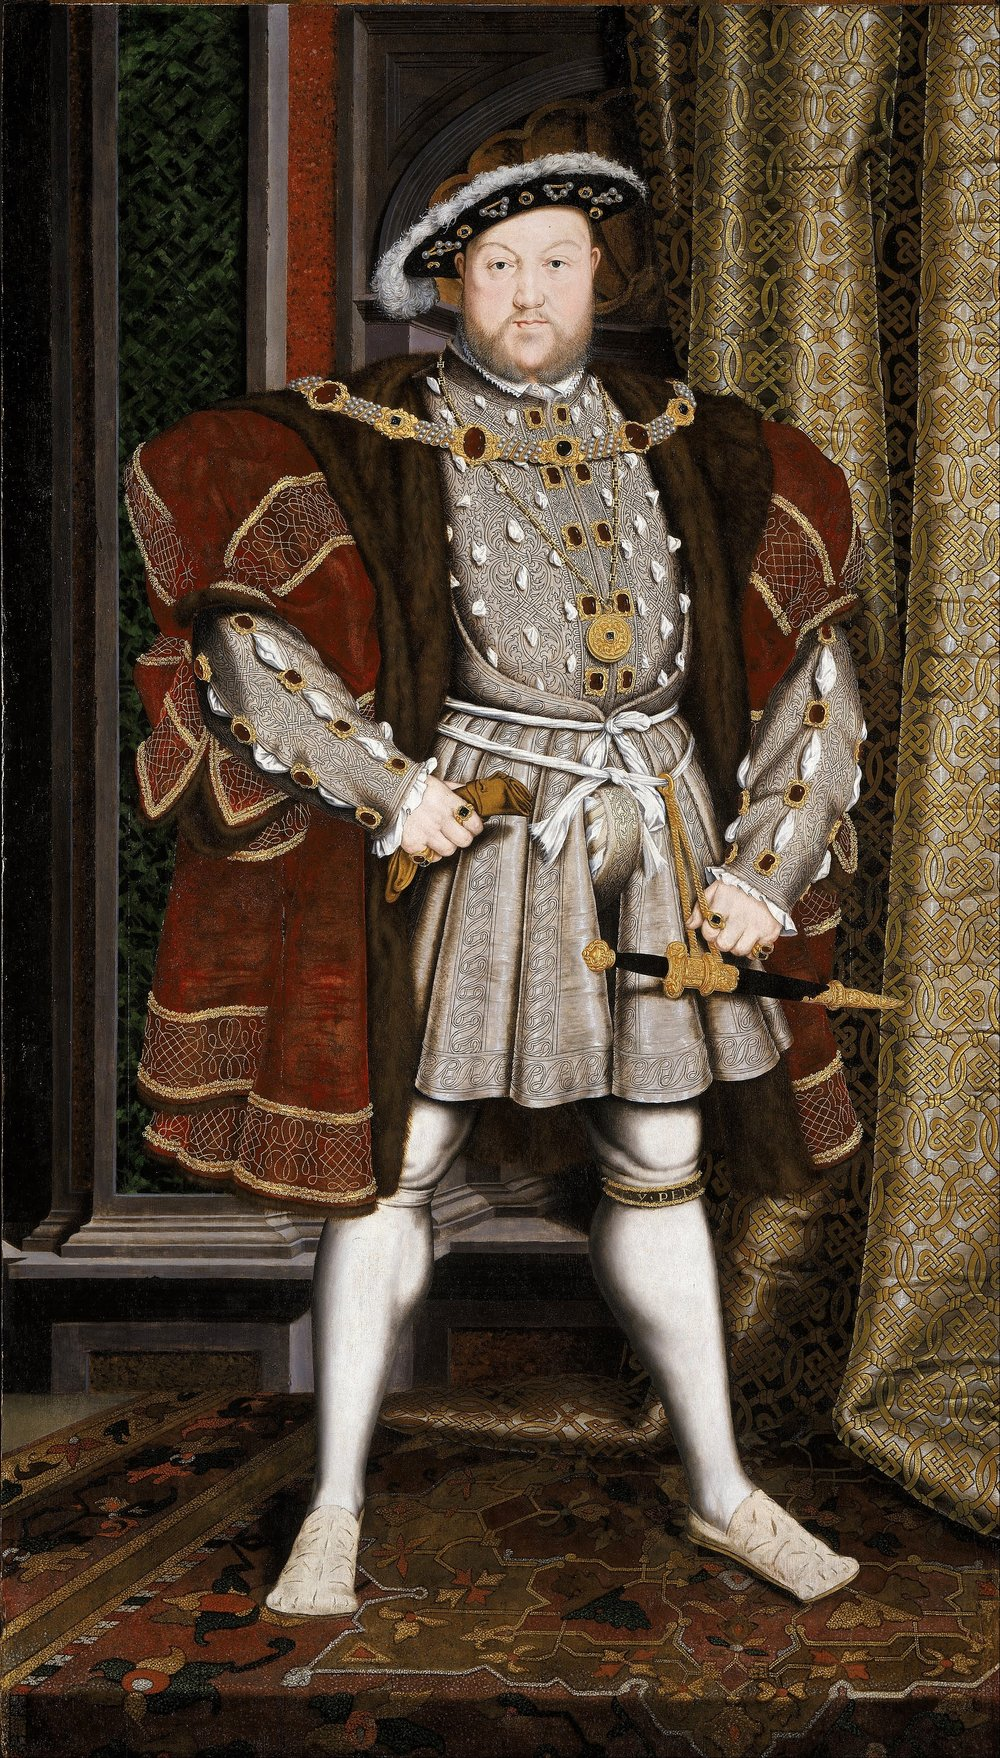 An iconic portrait of Henry VIII from the workshop of Hans Holbein.